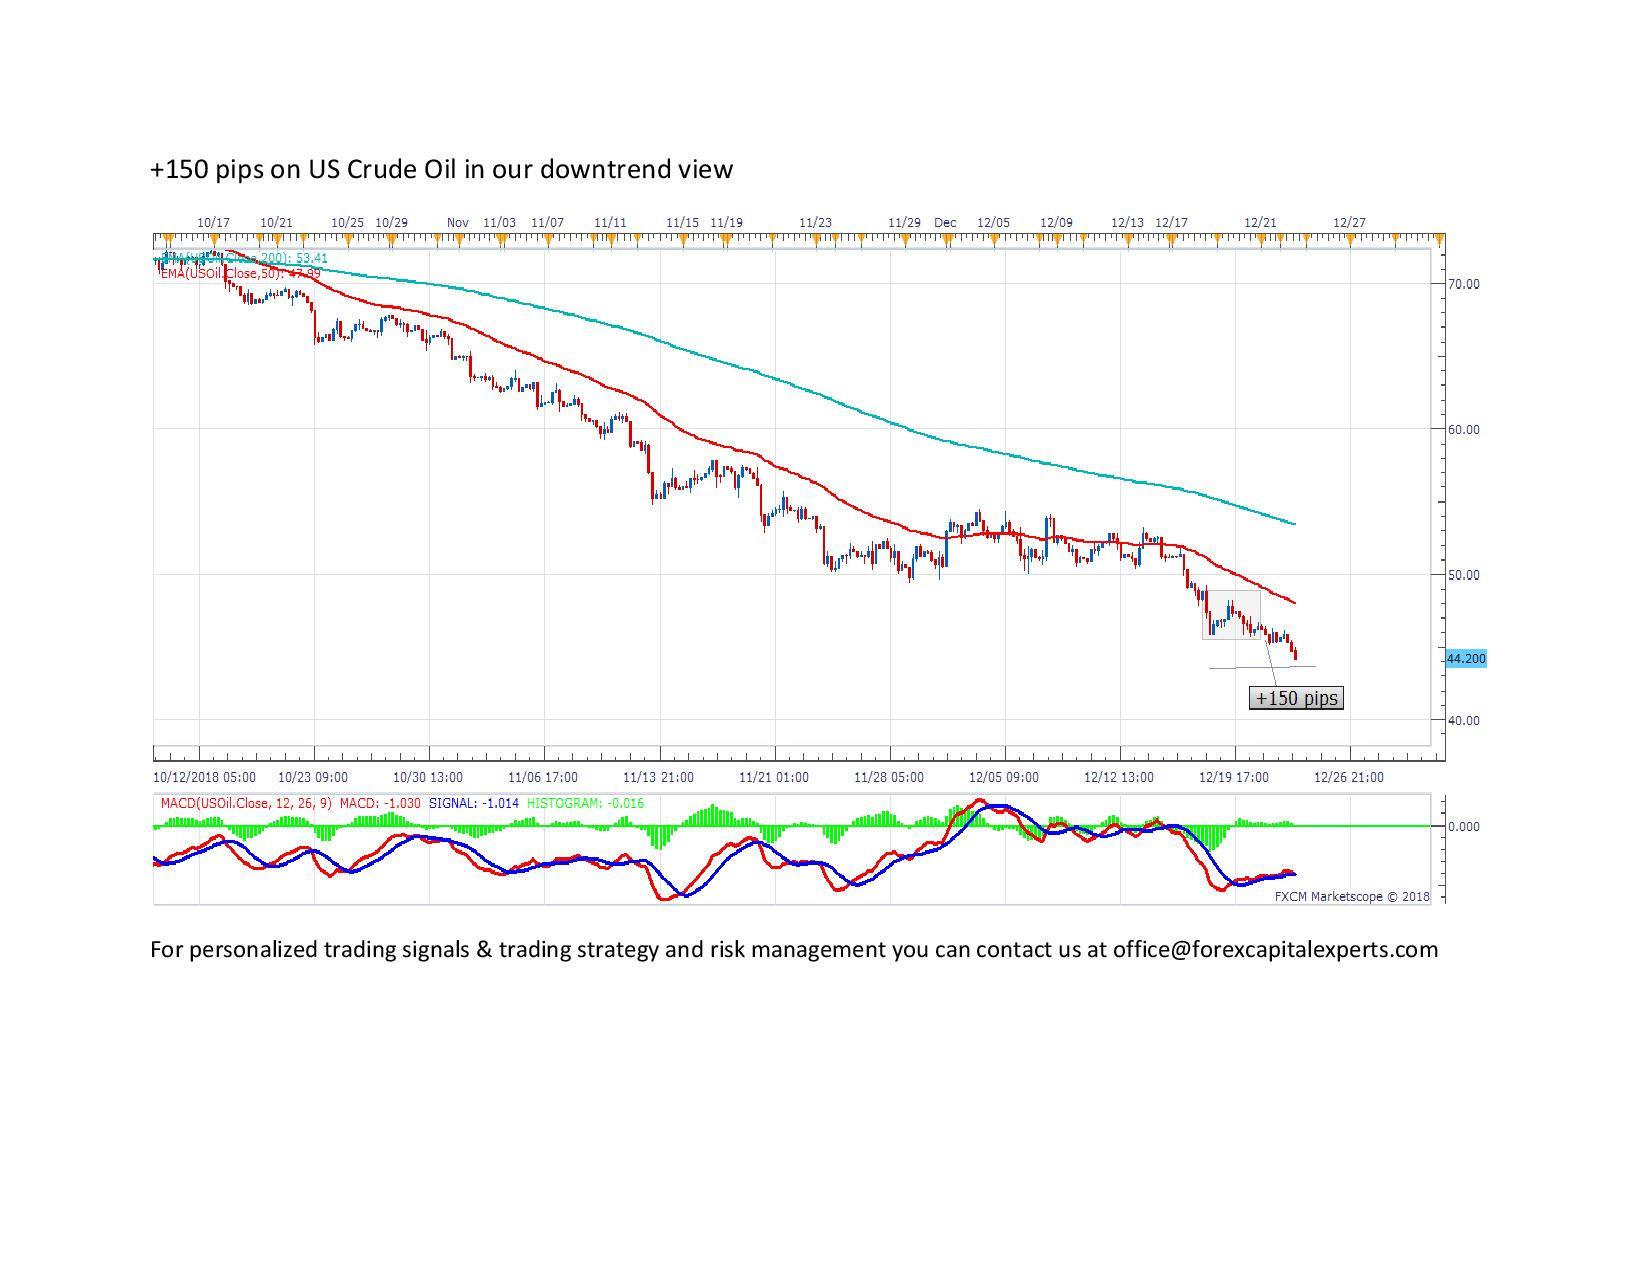 150 pips on US Crude Oil in our downtrend view page 001